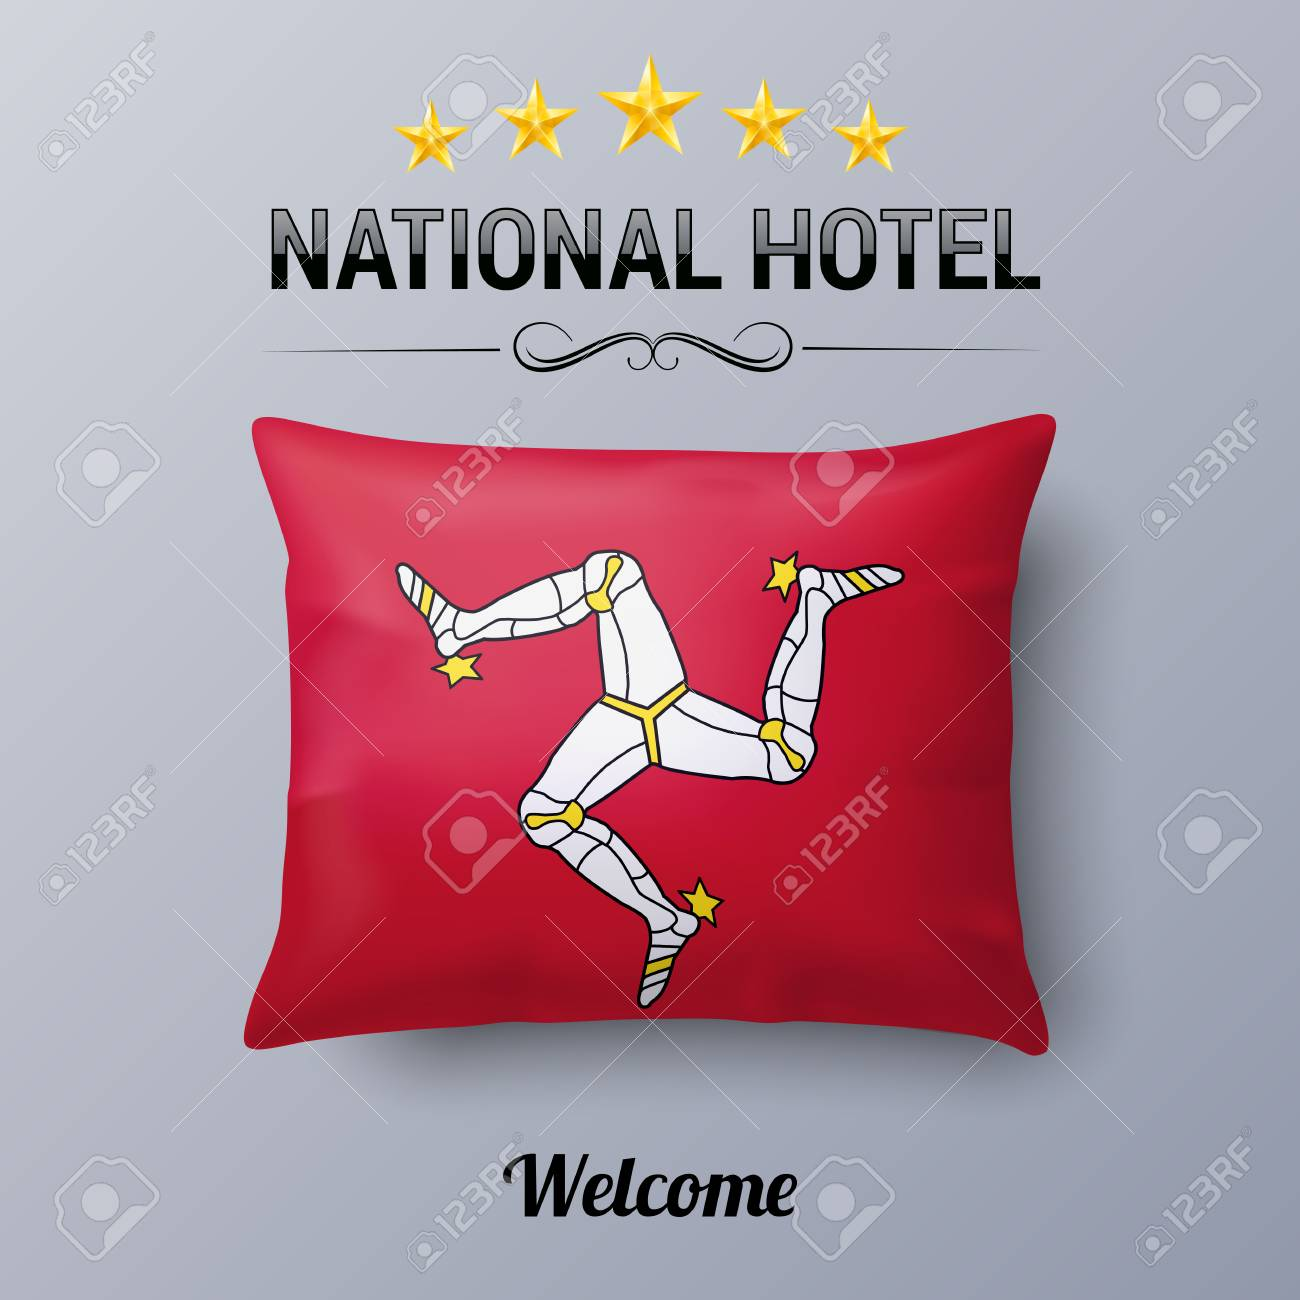 realistic pillow and flag of isle of man as symbol national hotel